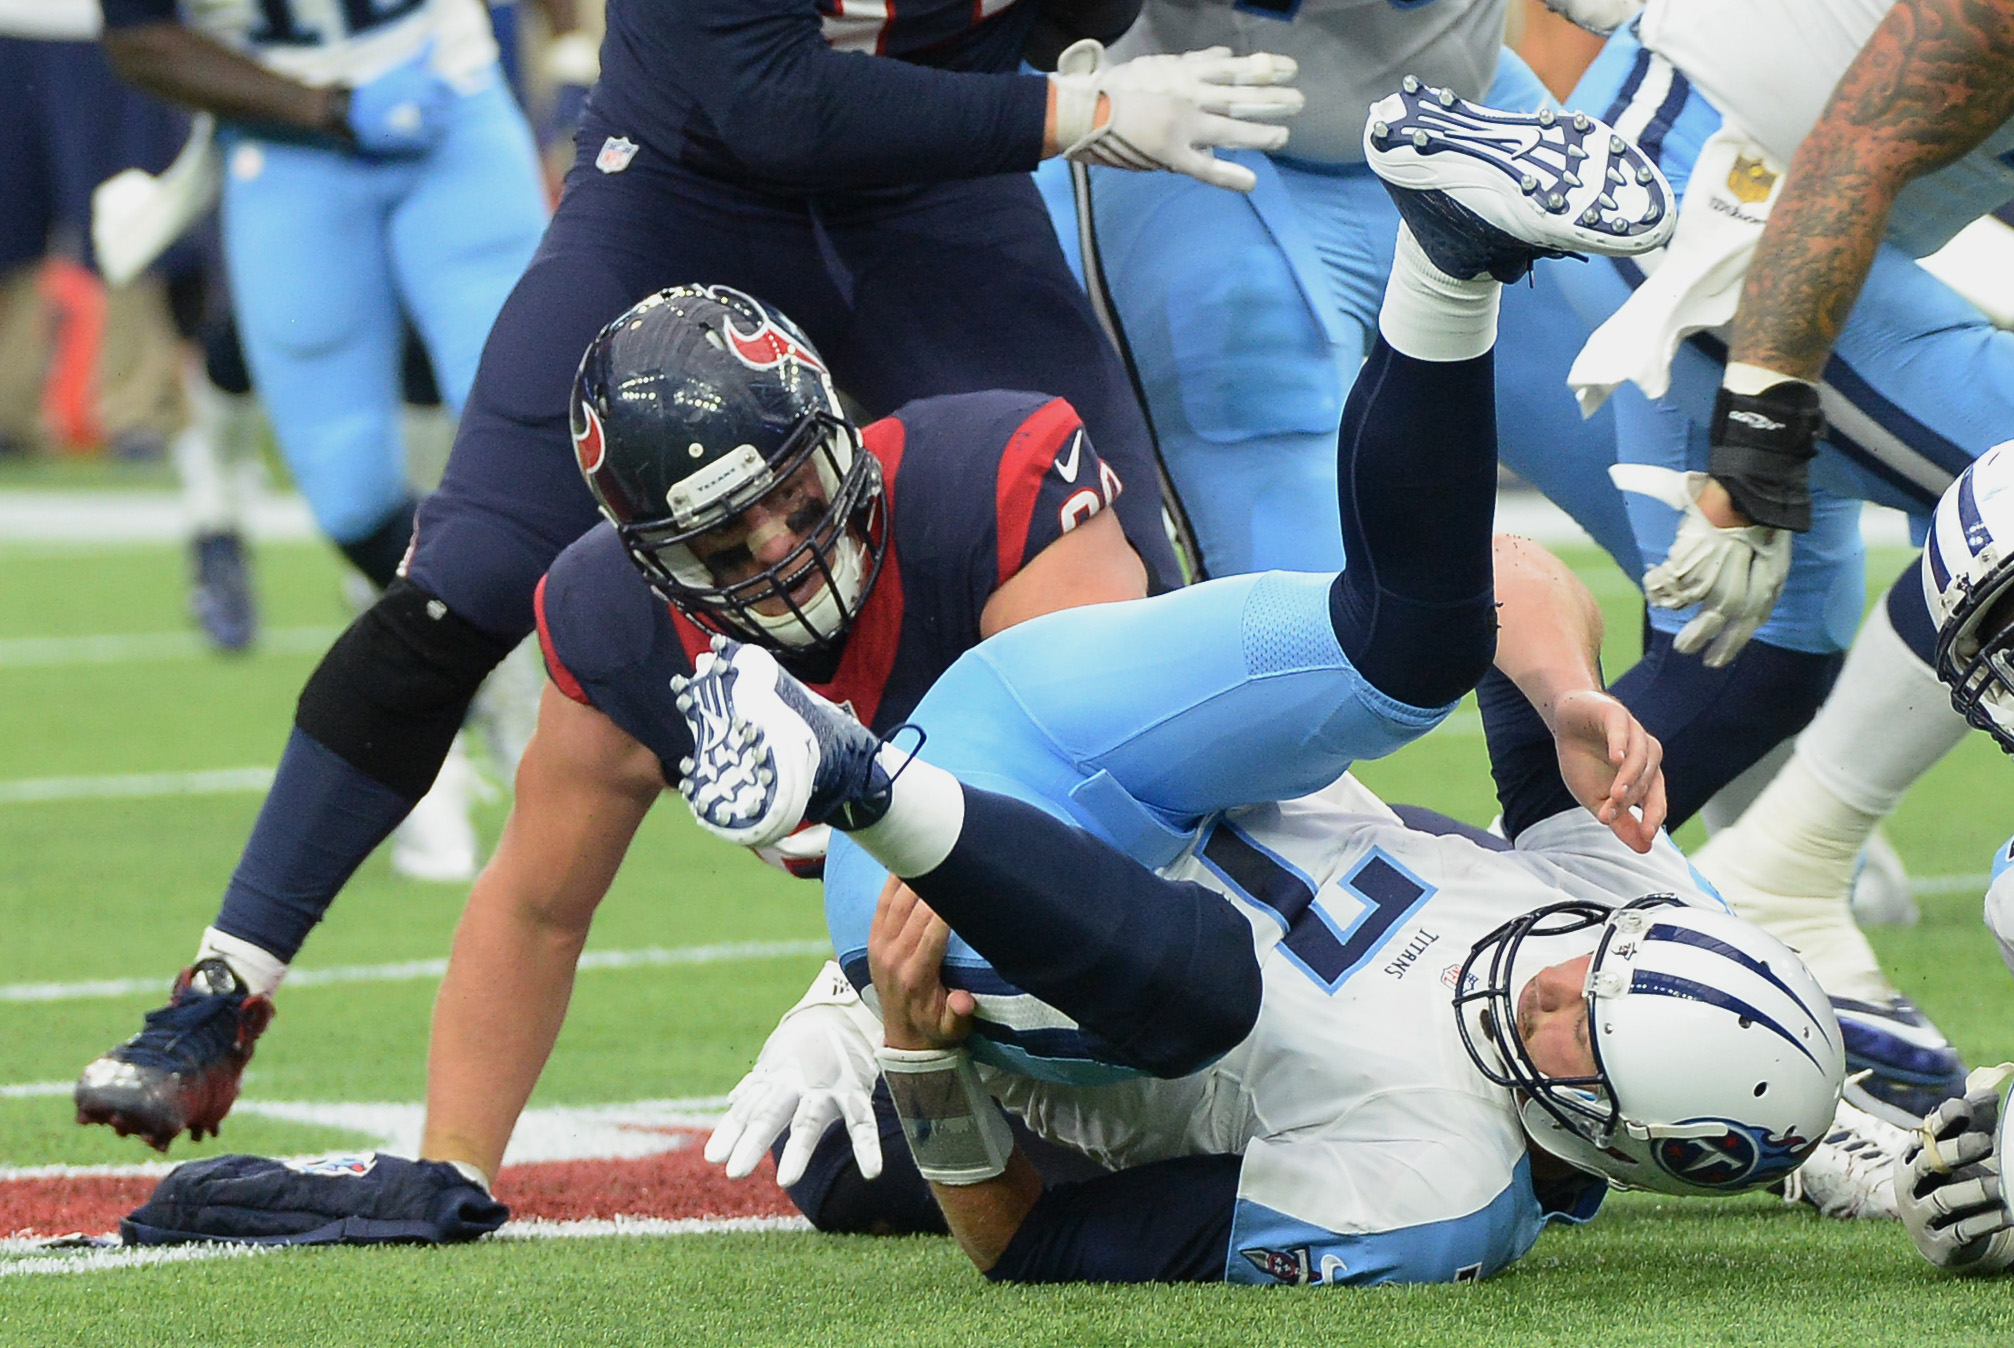 Tennessee Titans quarterback Zach Mettenberger (7) is upended by Houston Texans defensive end J.J. Watt (99) during the first half of an NFL football game, Sunday, Nov. 1, 2015, in Houston. (AP Photo/George Bridges)